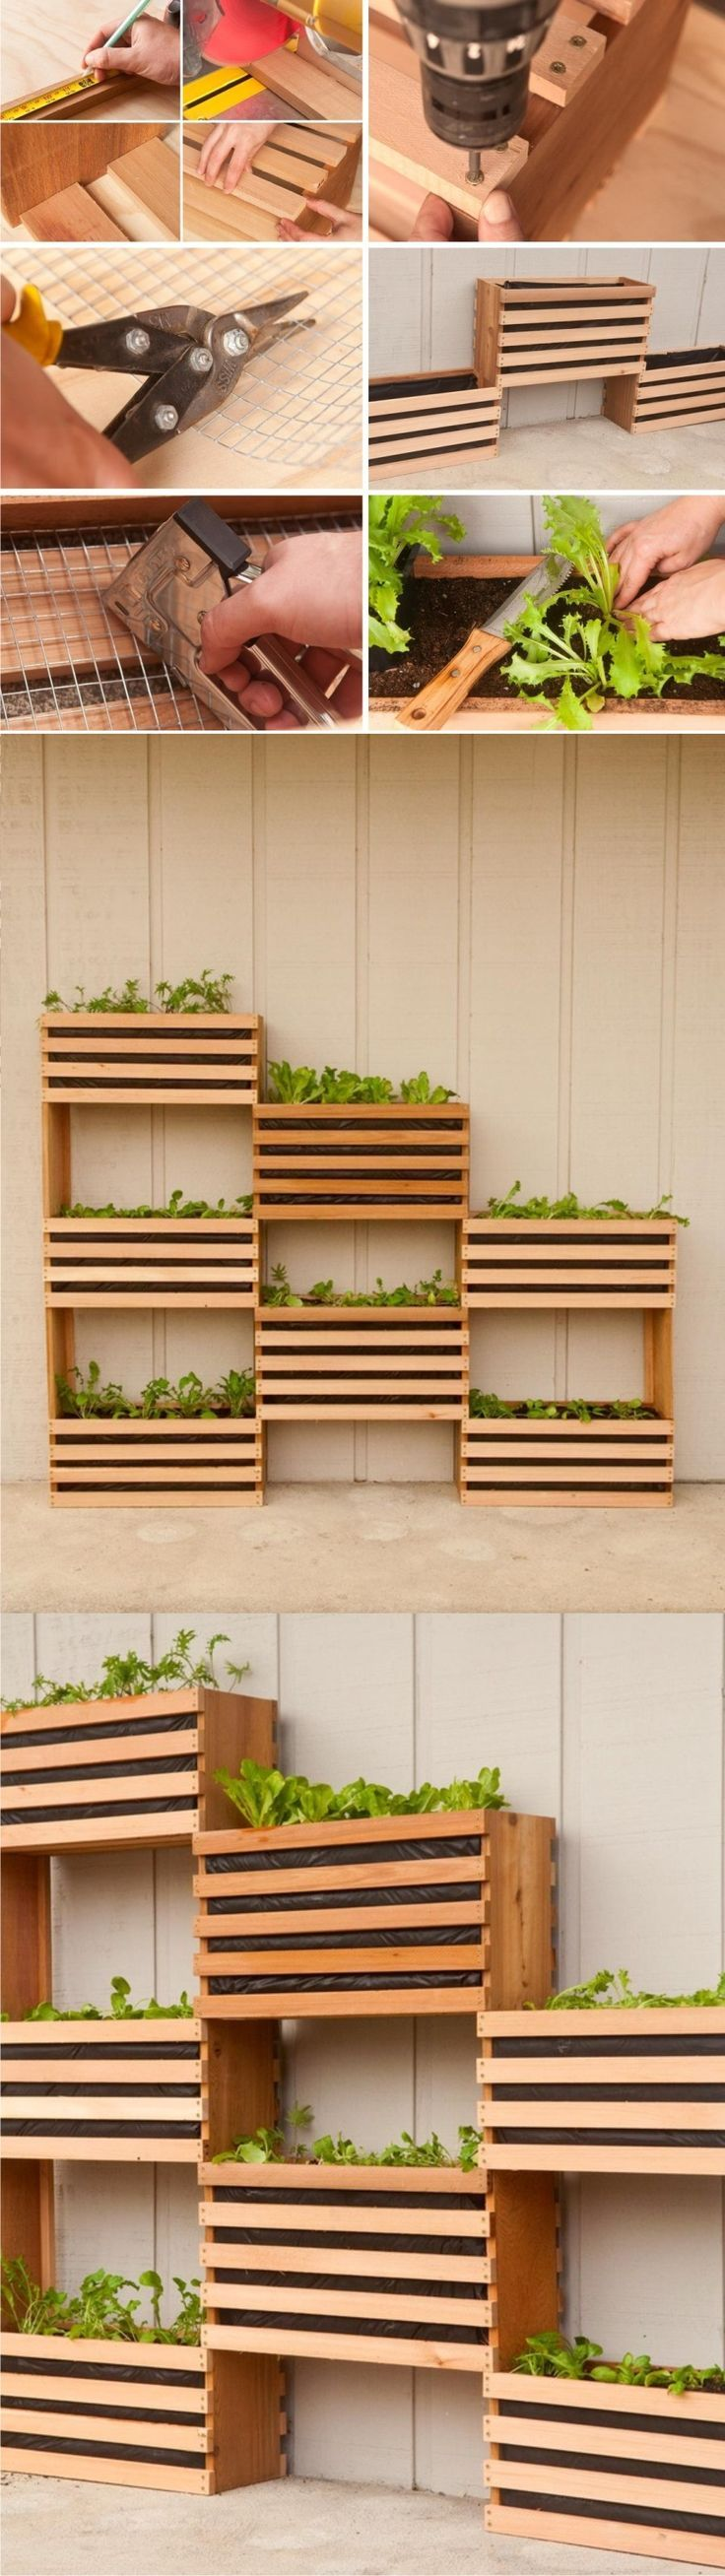 Vertical Kitchen Garden 17 Best Ideas About Vertical Garden Design On Pinterest Vertical